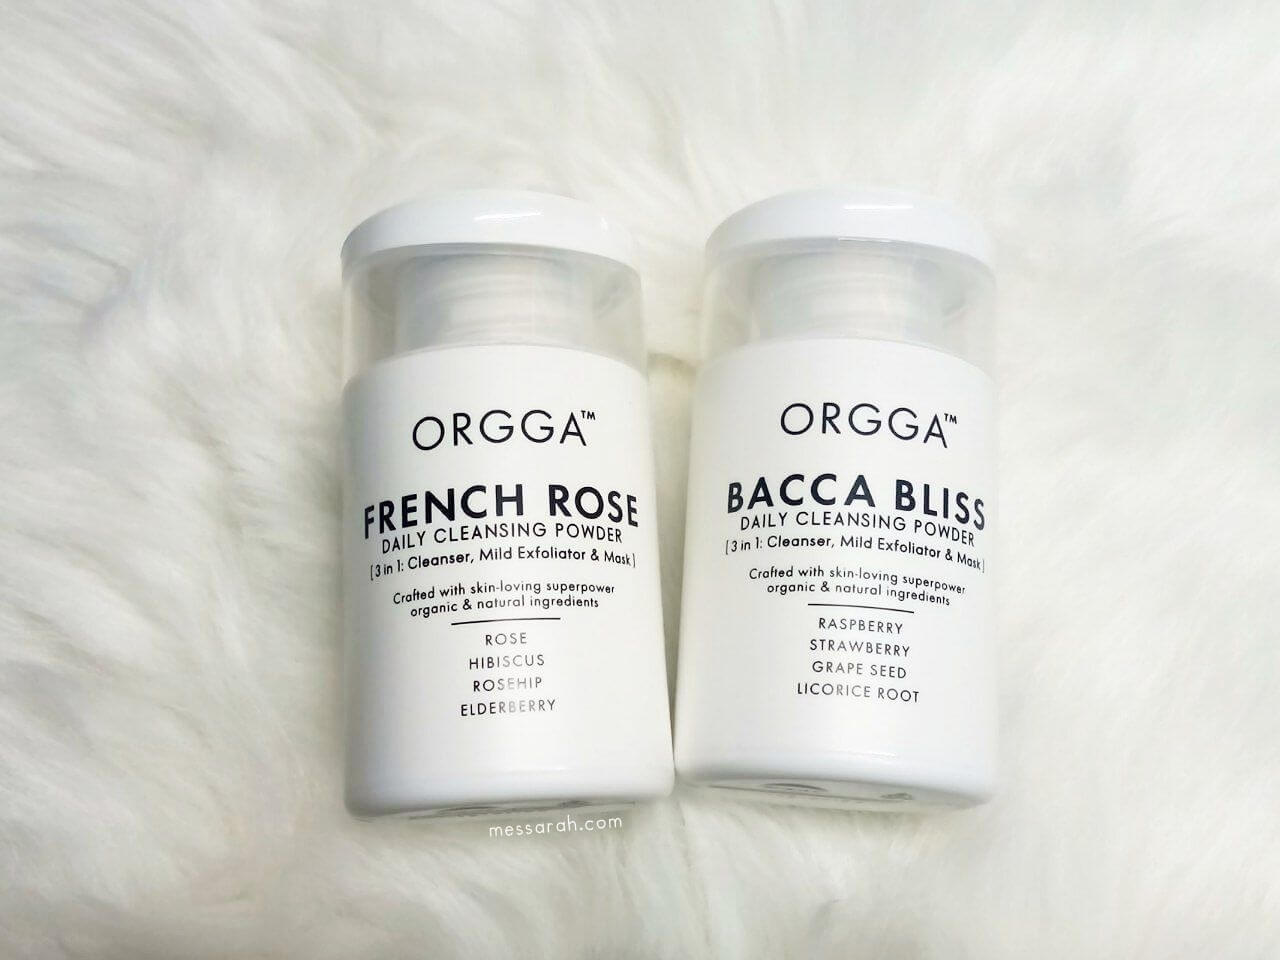 French Rose and Bacca Bliss Daily Cleansing Powder